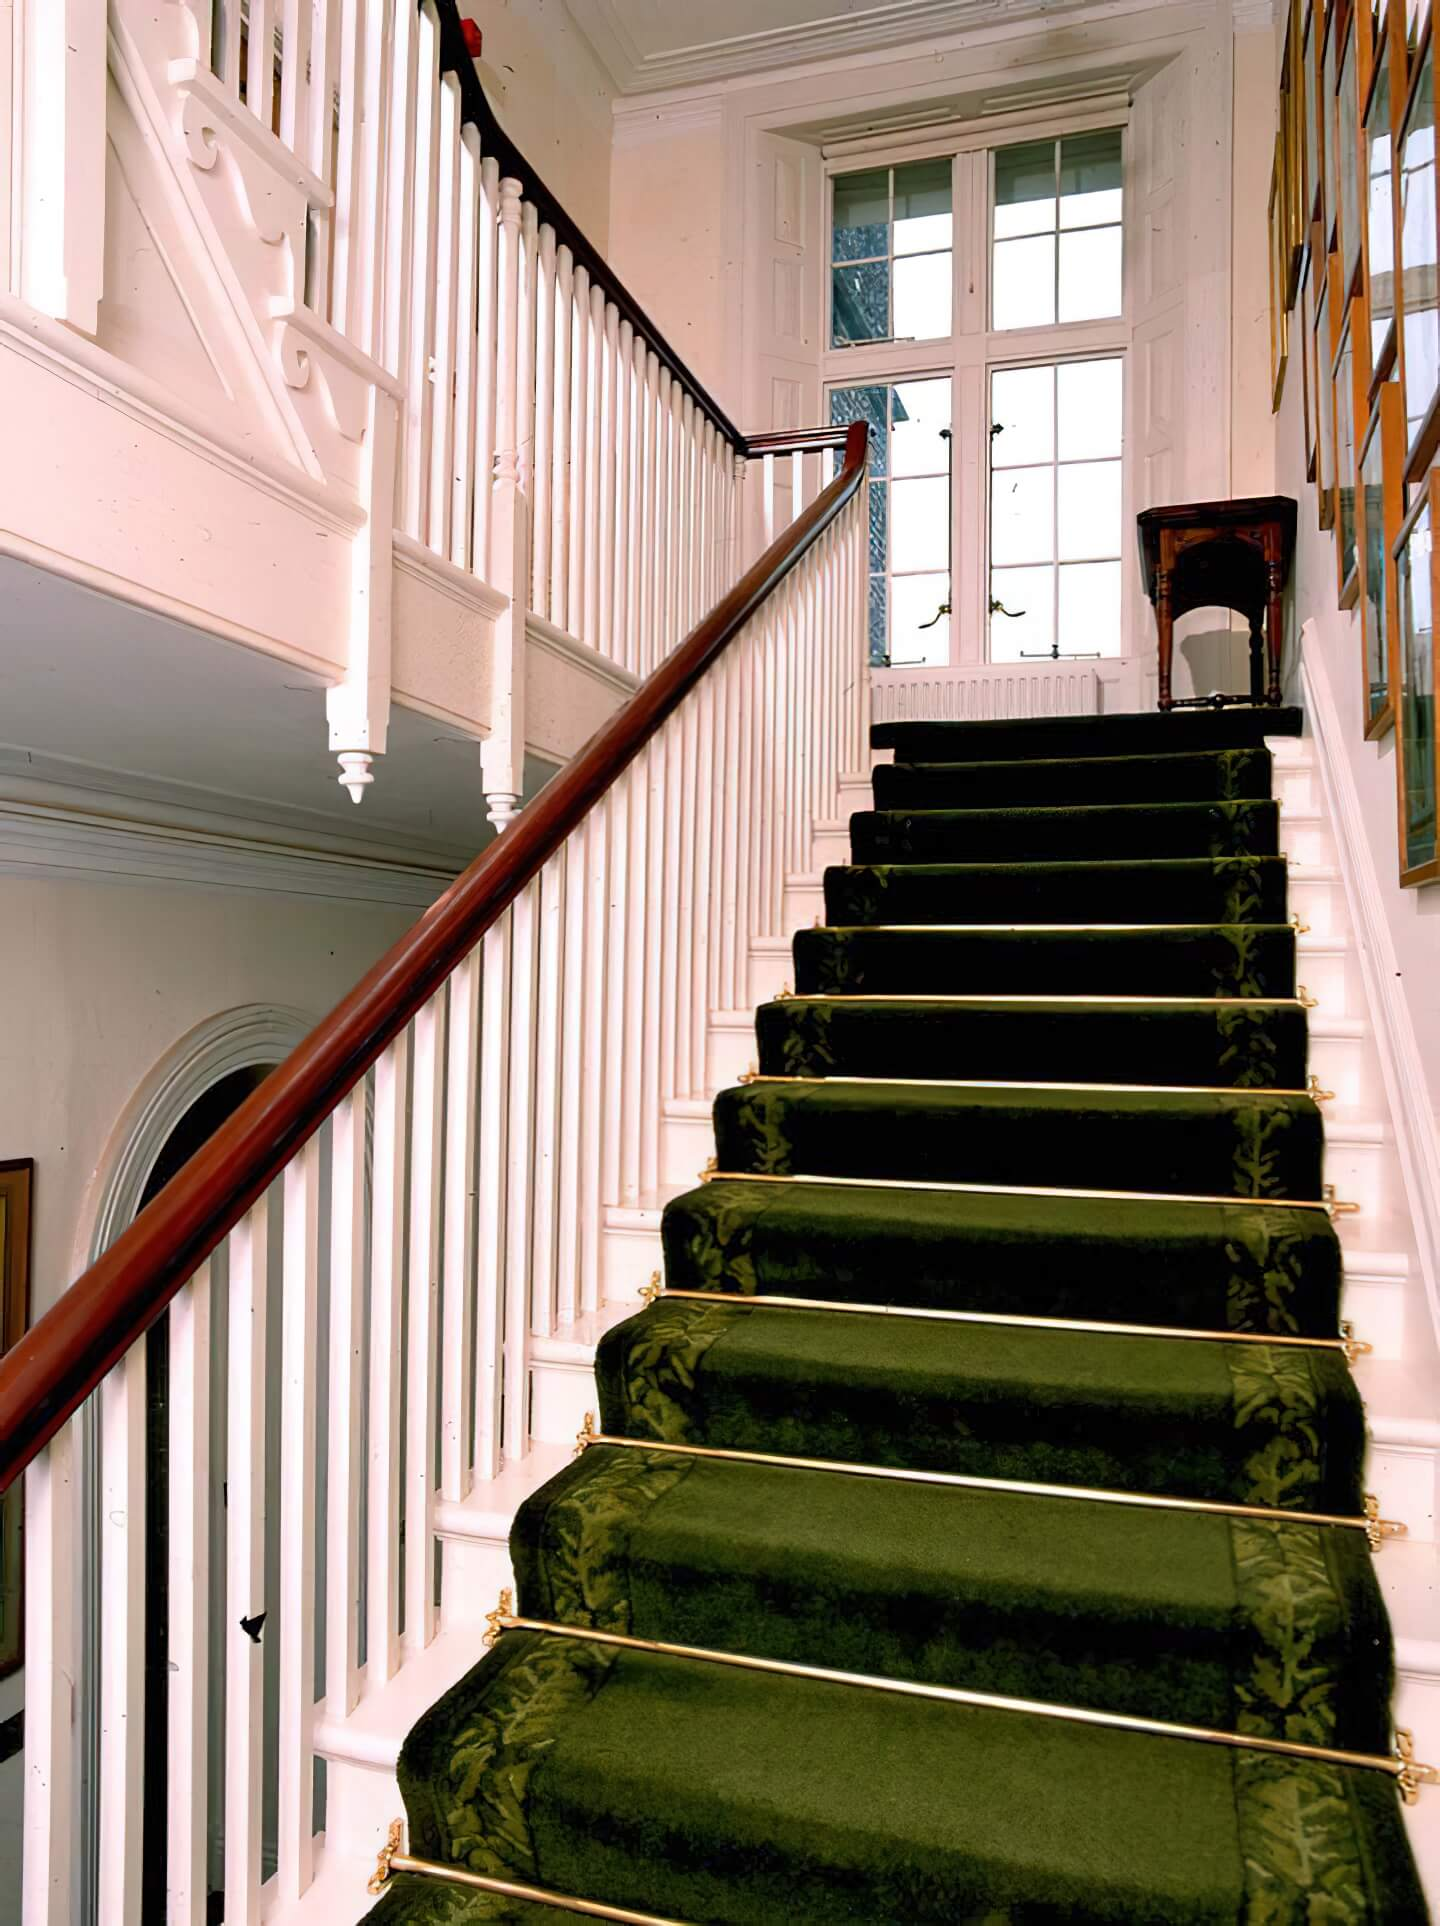 West Dean staircase carpet with a special border design taken from an old rug designed by Voysey which was discovered in the attic by David Mlnaric and adapted by Rob Holmes.